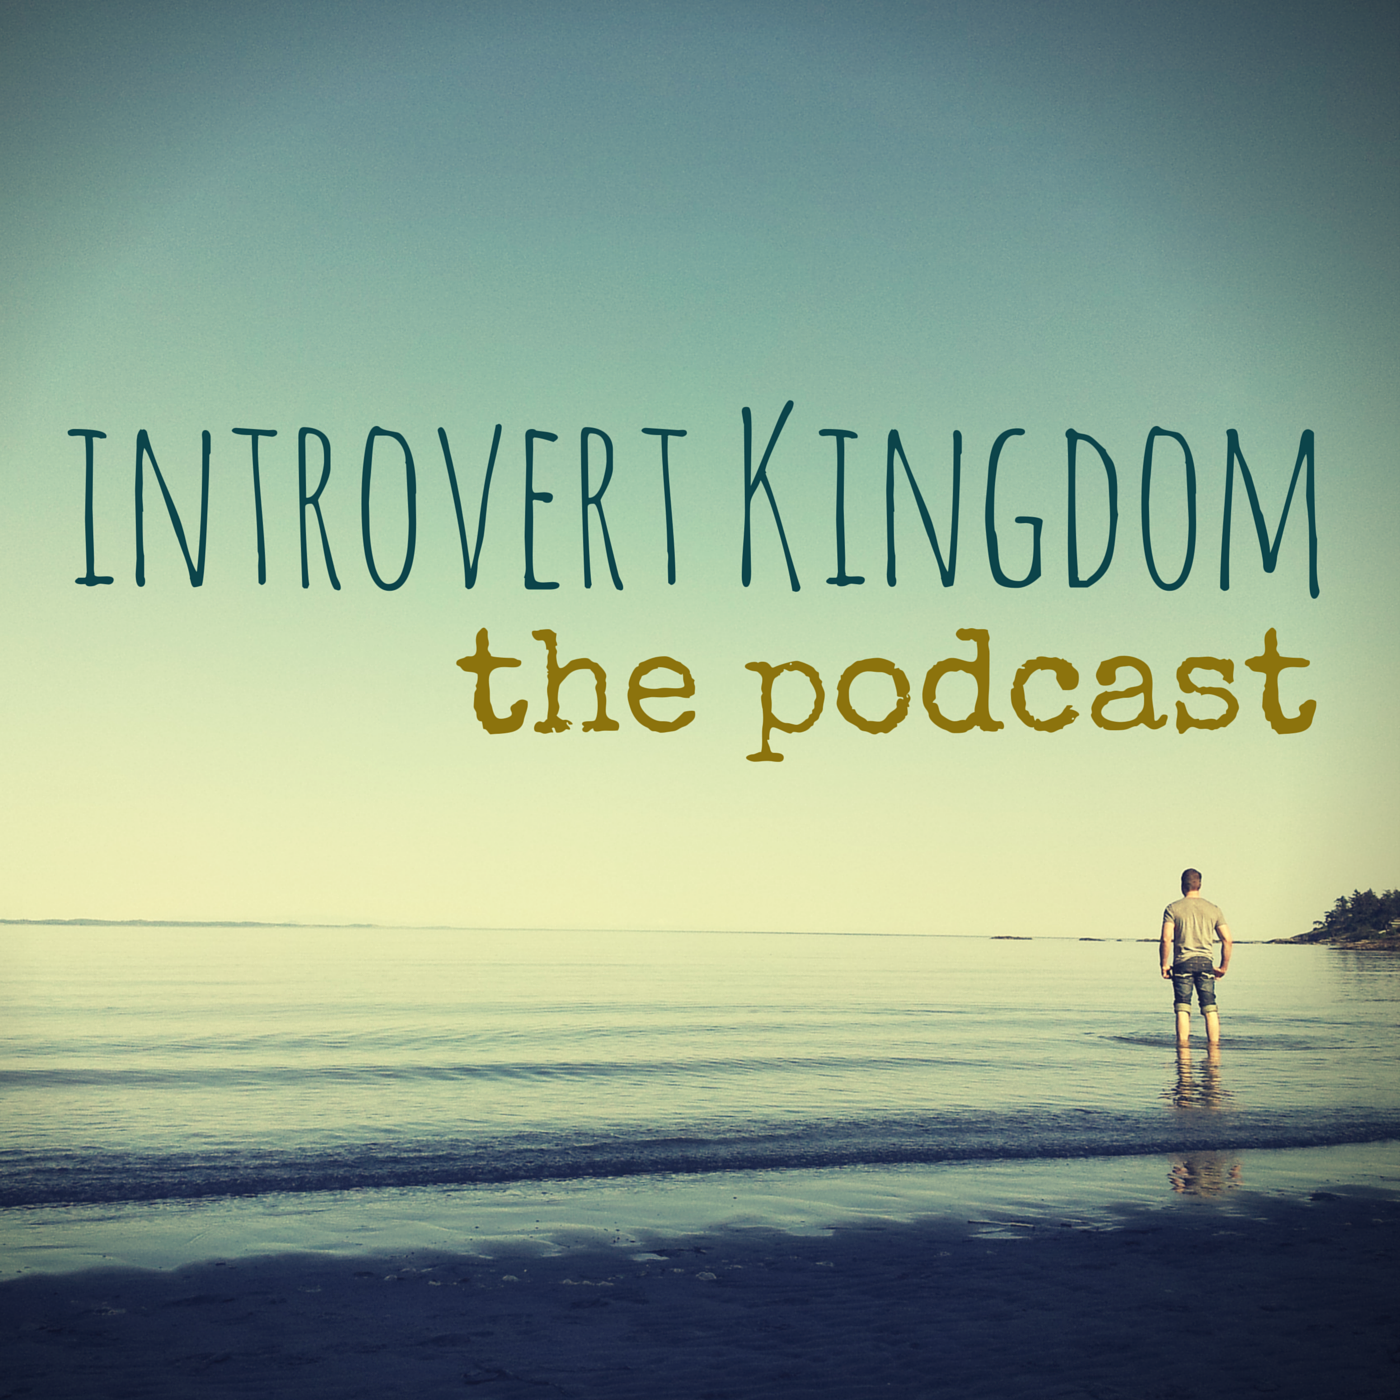 Blog - Introvert Kingdom